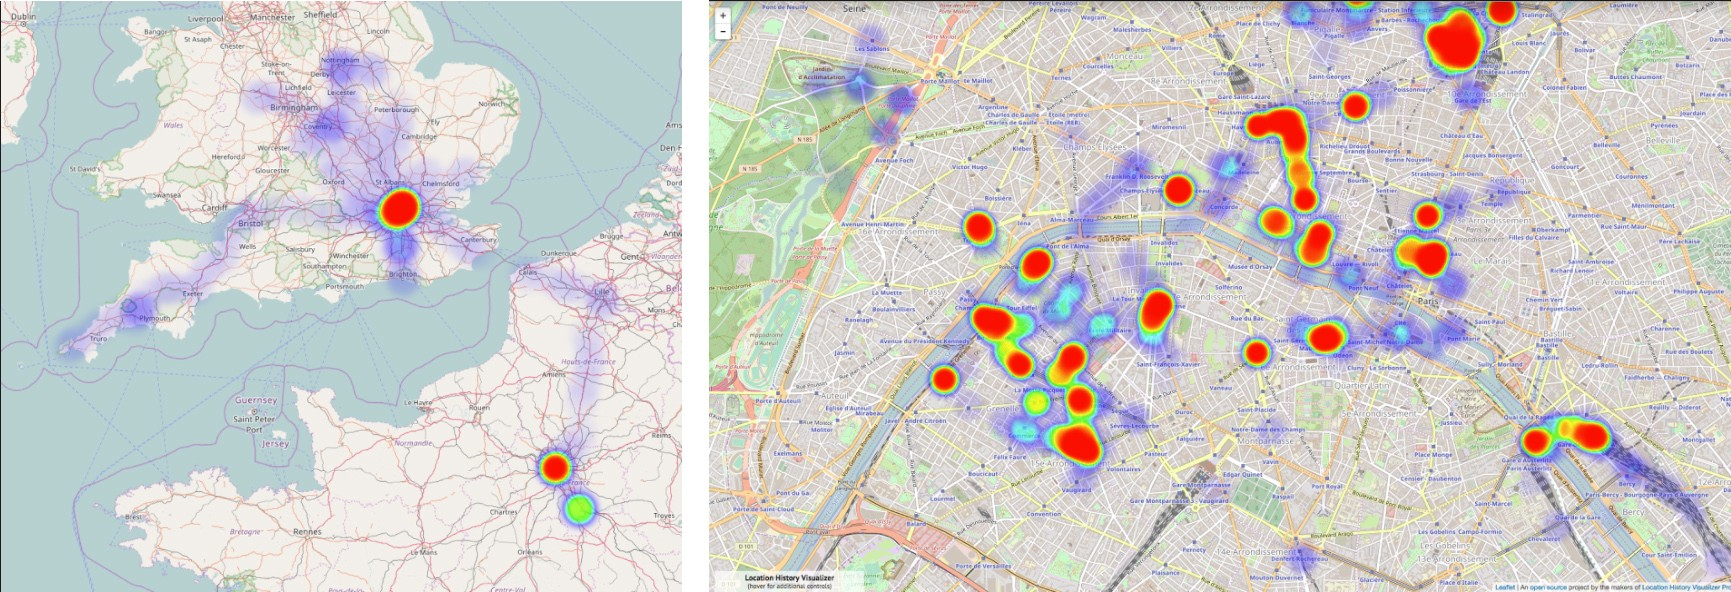 create a heat map from your google location history in 3 easy steps